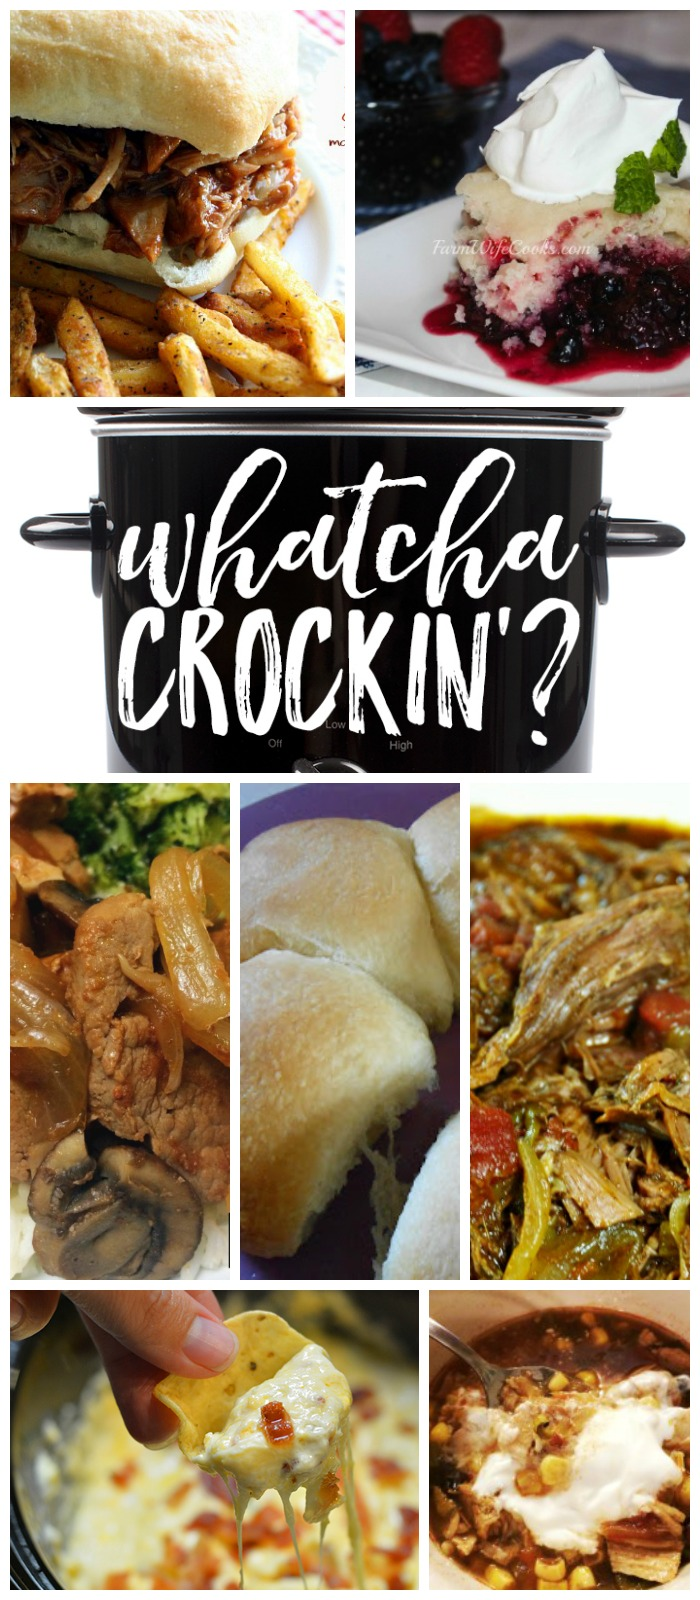 This week's Whatcha Crockin' crock pot recipes include Bacon Double Cheese Dip, Mixed Berry Dump Cake, Slow Cooker Chipotle Shredded Beef, E-Z Slow Cooker Dinner Rolls, Crock Pot Root Beer Pulled Pork Sandwiches, Crock Pot Turkey Tortilla Soup, Slow Cooker Cantonese Pork and more!